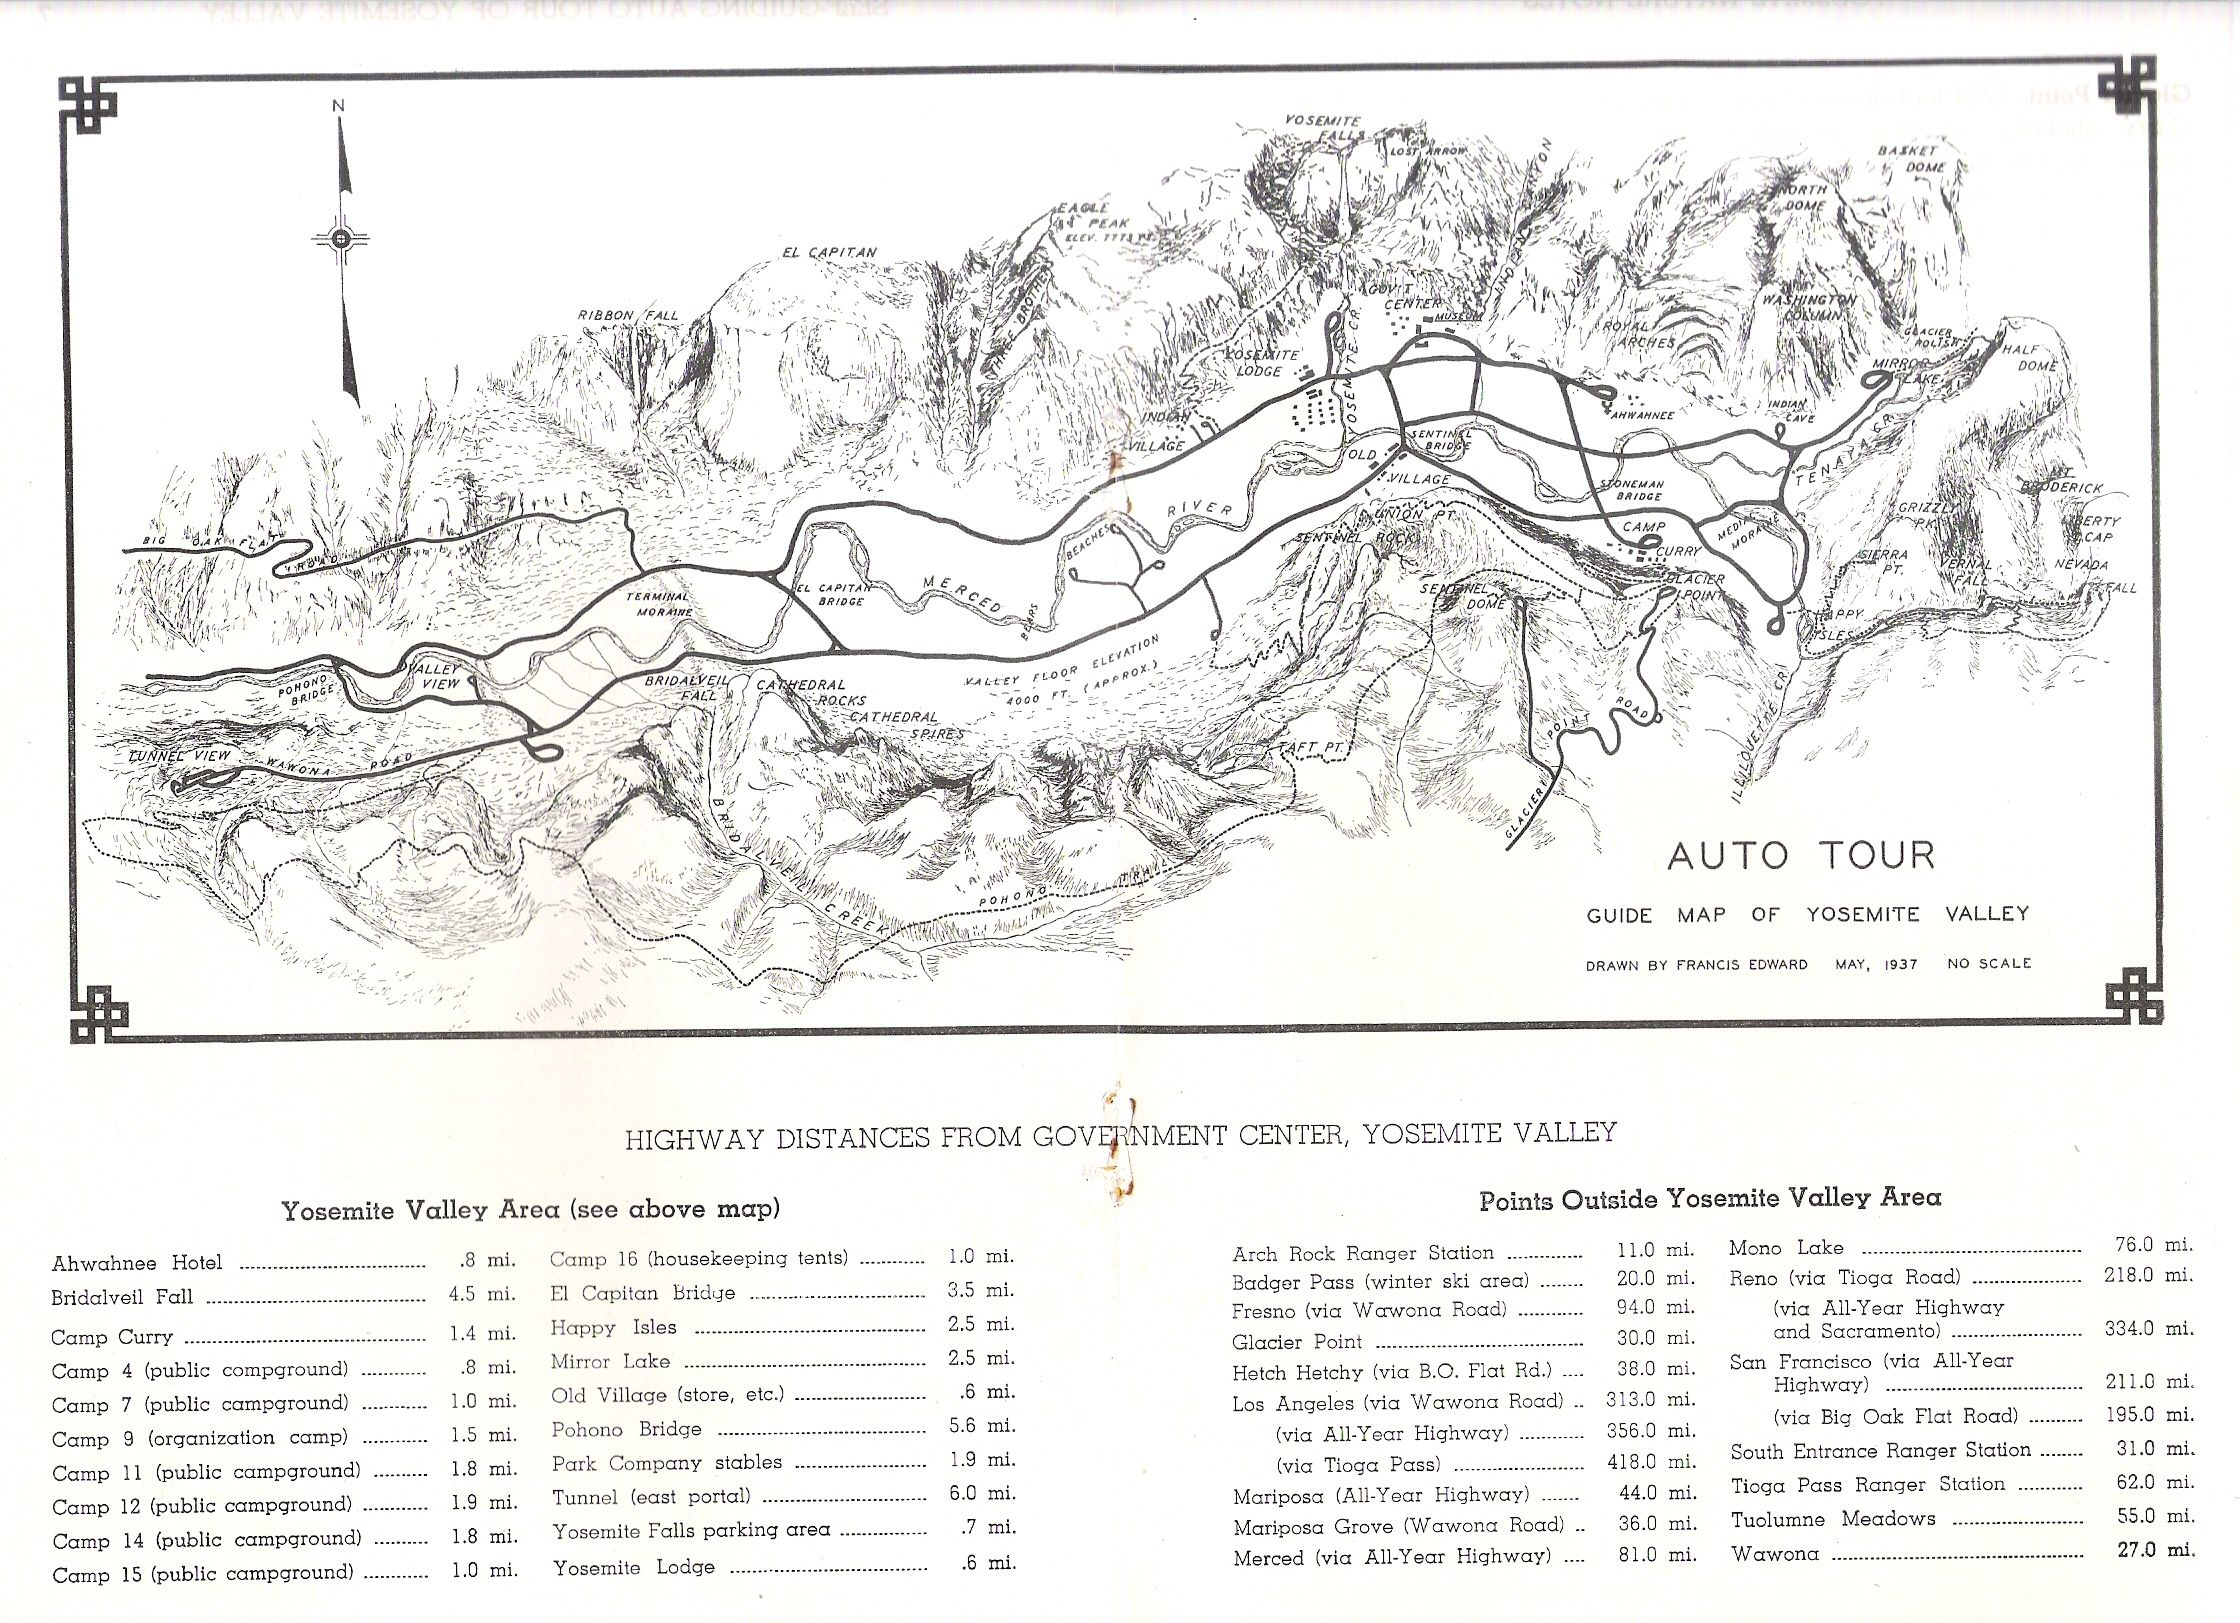 yosemite valley map 1937 // hand drawn map research